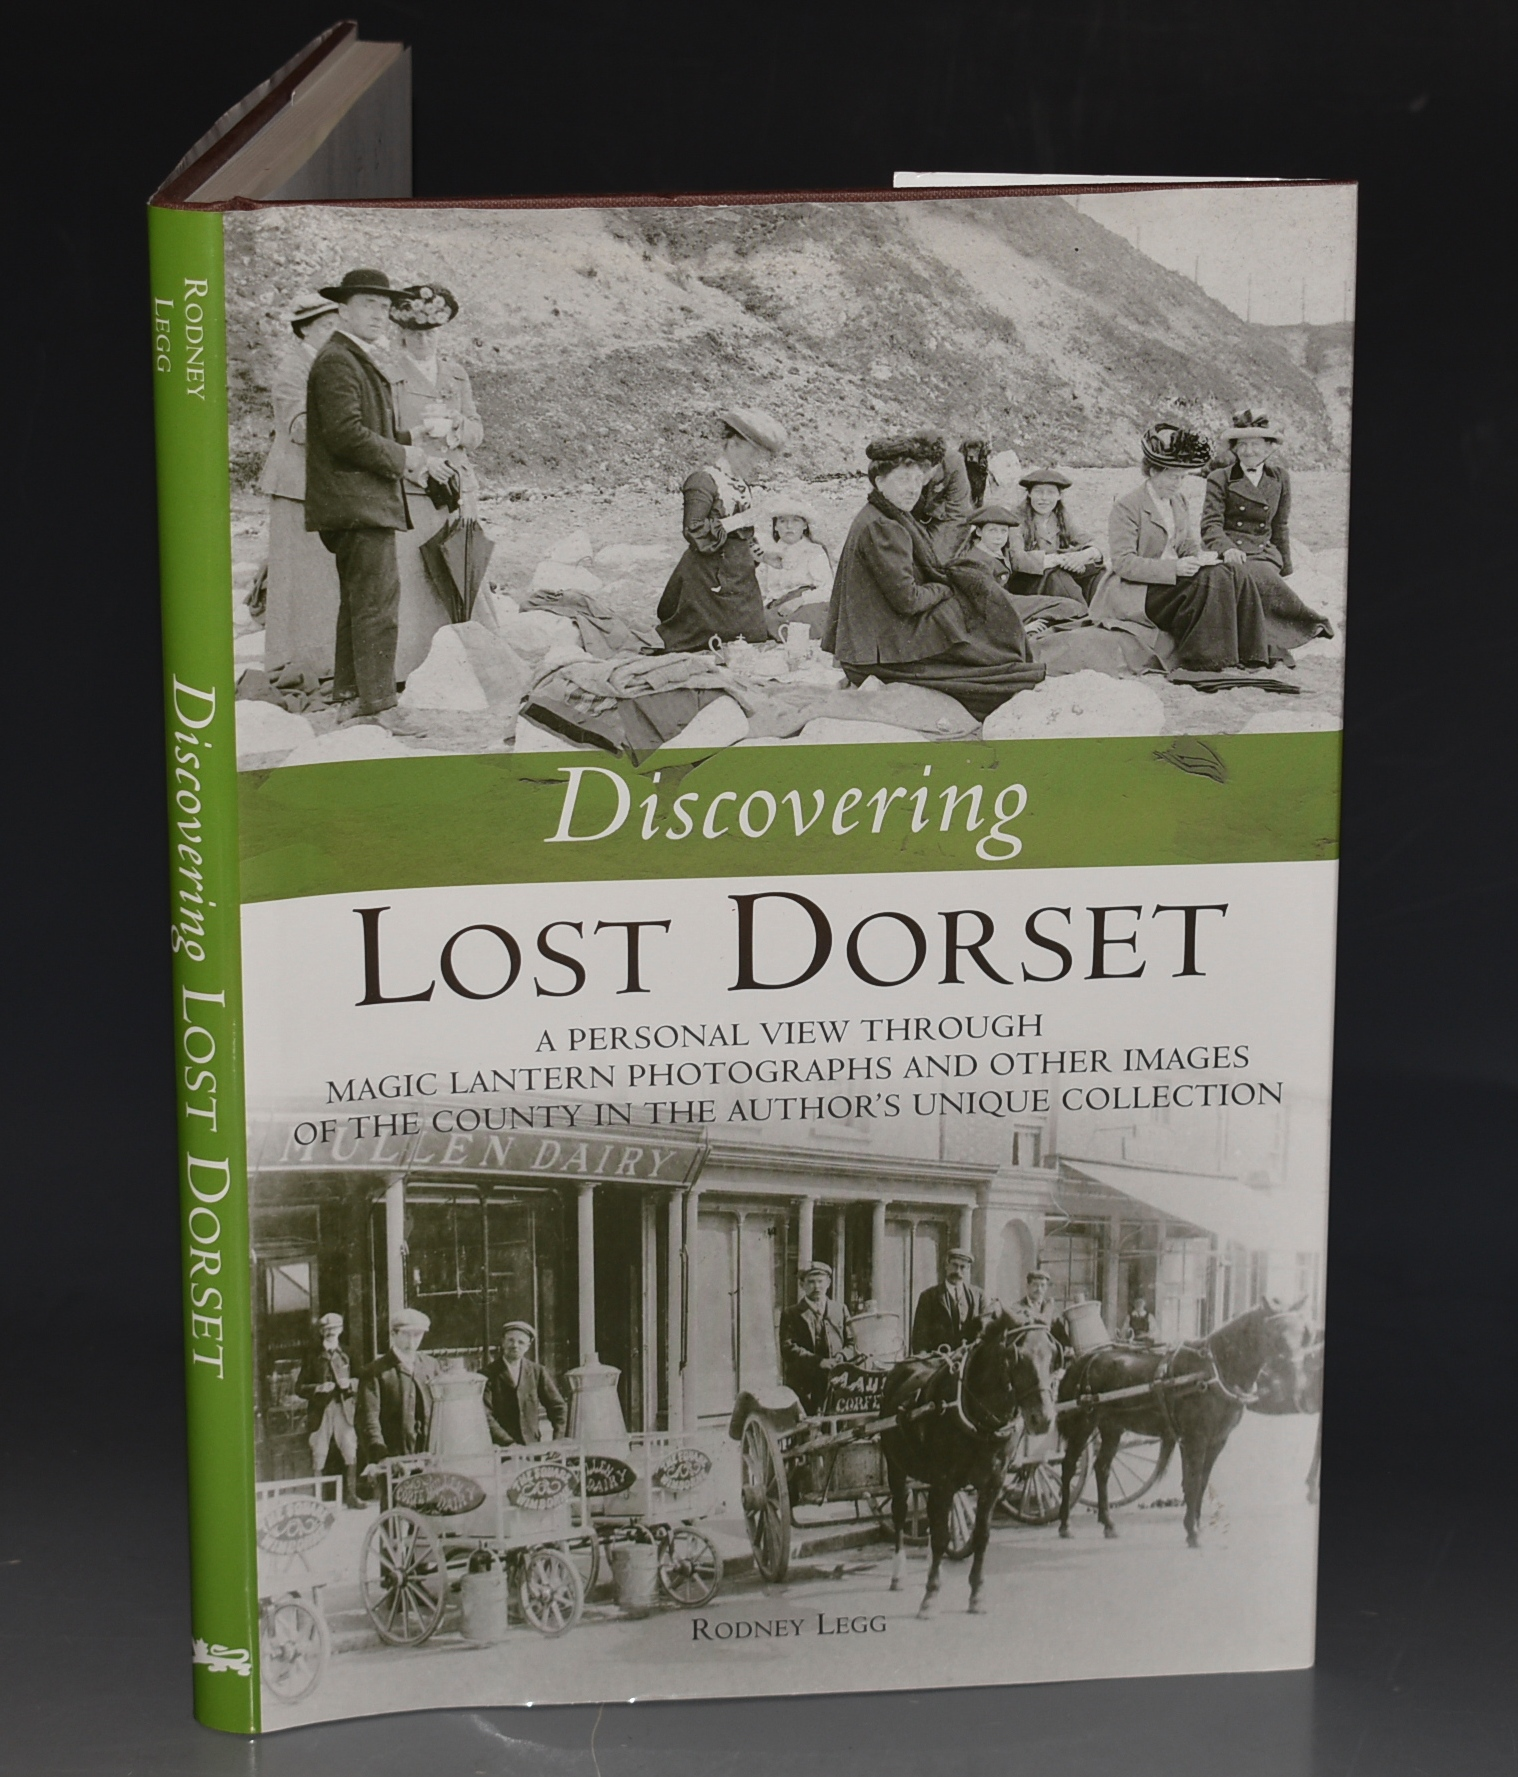 Image for Discovering Lost Dorset. A personal view through magic lantern photographs and other images of the county in the Author's Unique Collection.